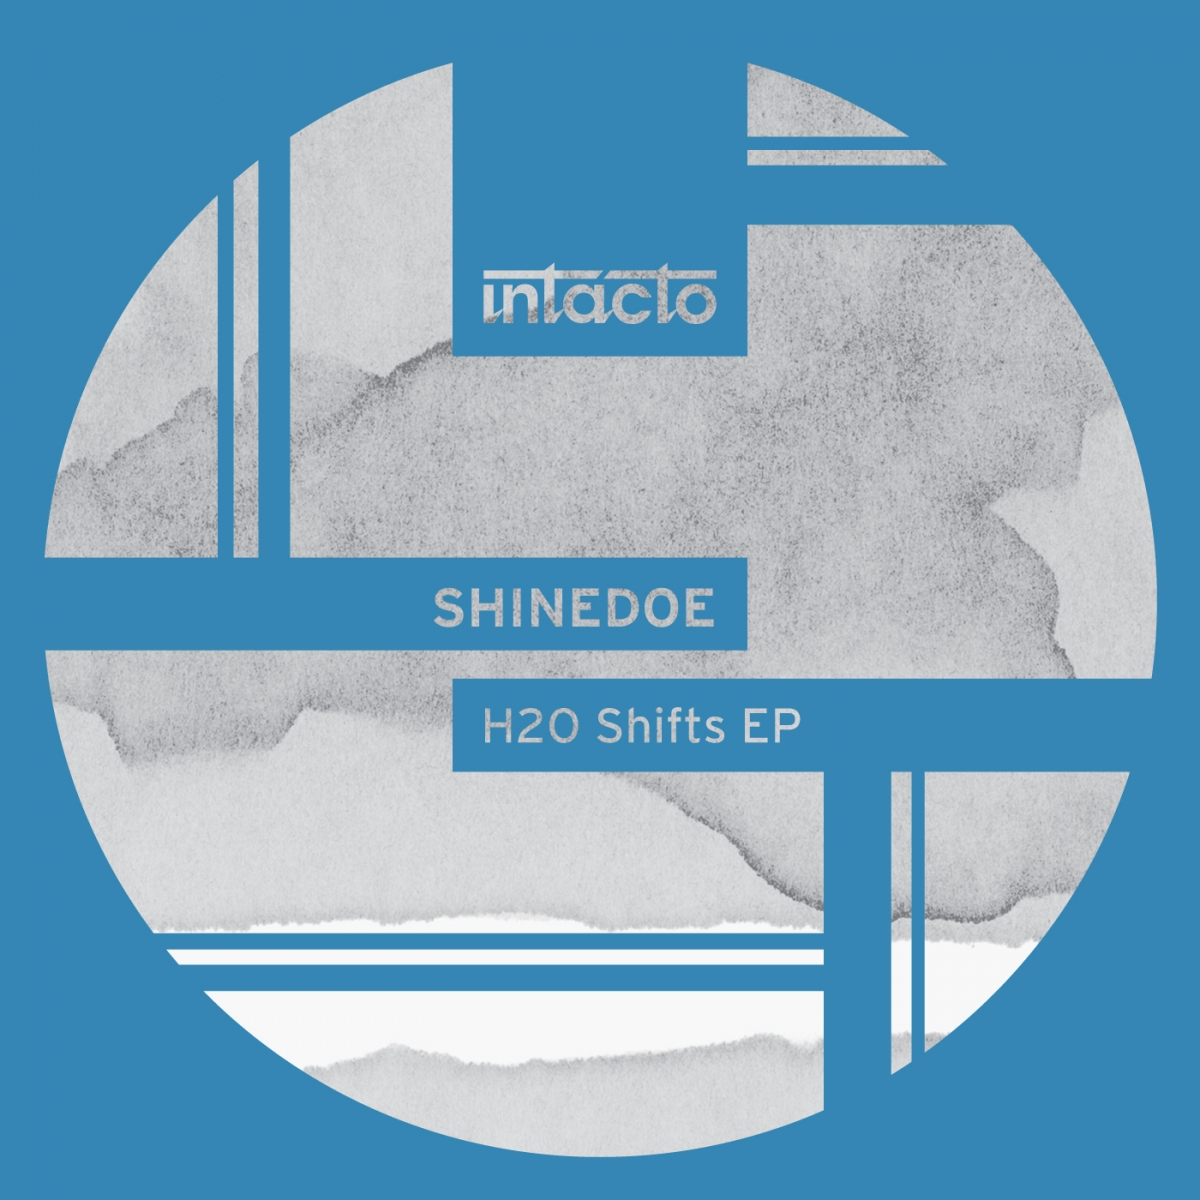 H2O Shifts EP available